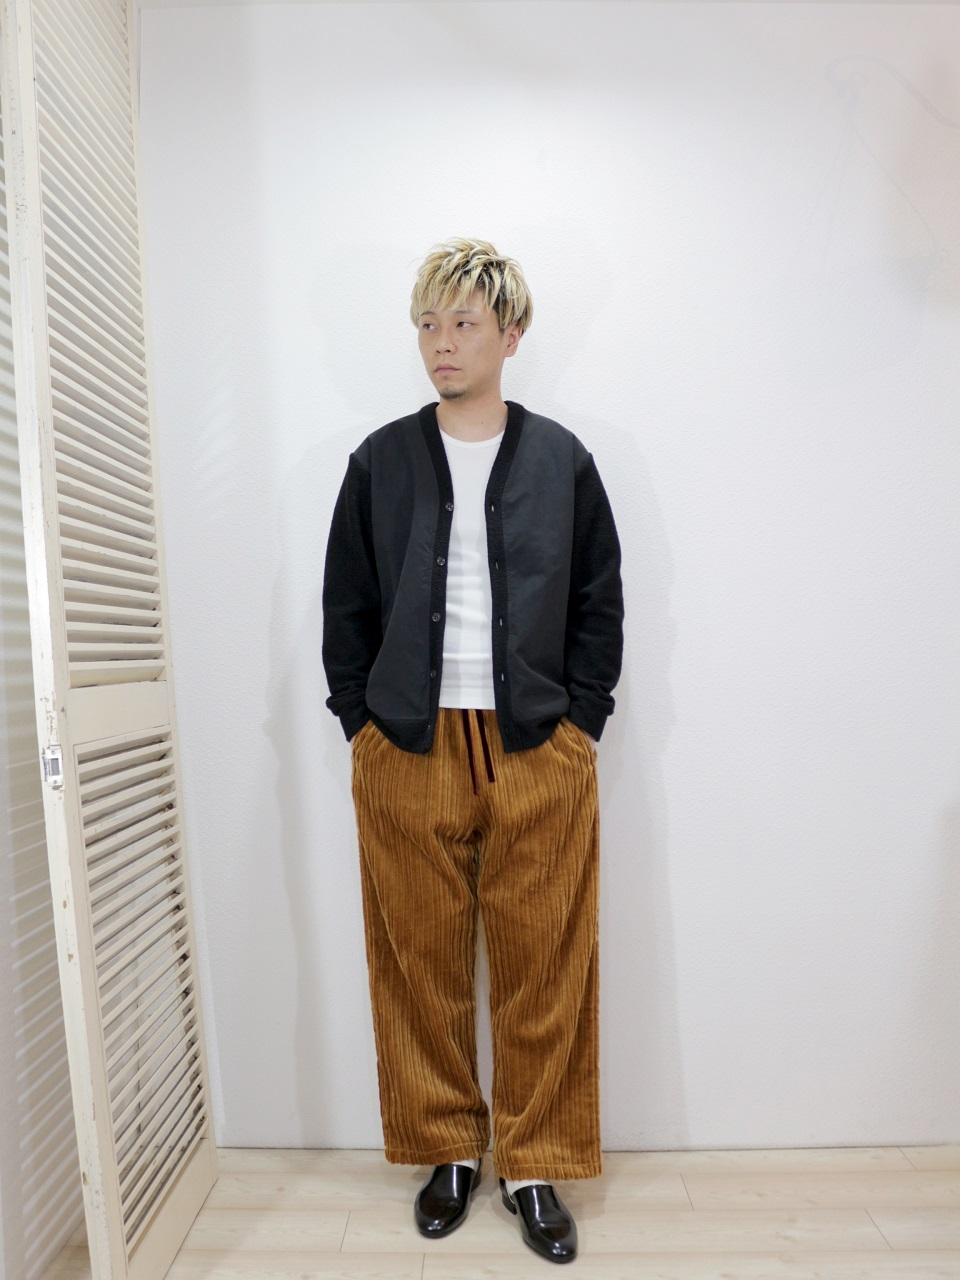 tops/modem design-SLIVER KNIT CARDIGAN(M-1807360)(SIZE 2)tee/LOCALINA-MERIYASU-L/S CREW NECK(SIZE 2)pants/ReAdd-CORDUROY WIDE PANTS(SIZE M)socks/decka-REVERSIBLE SHORT SOCKS(SIZE MEN)を使ったコーディネート